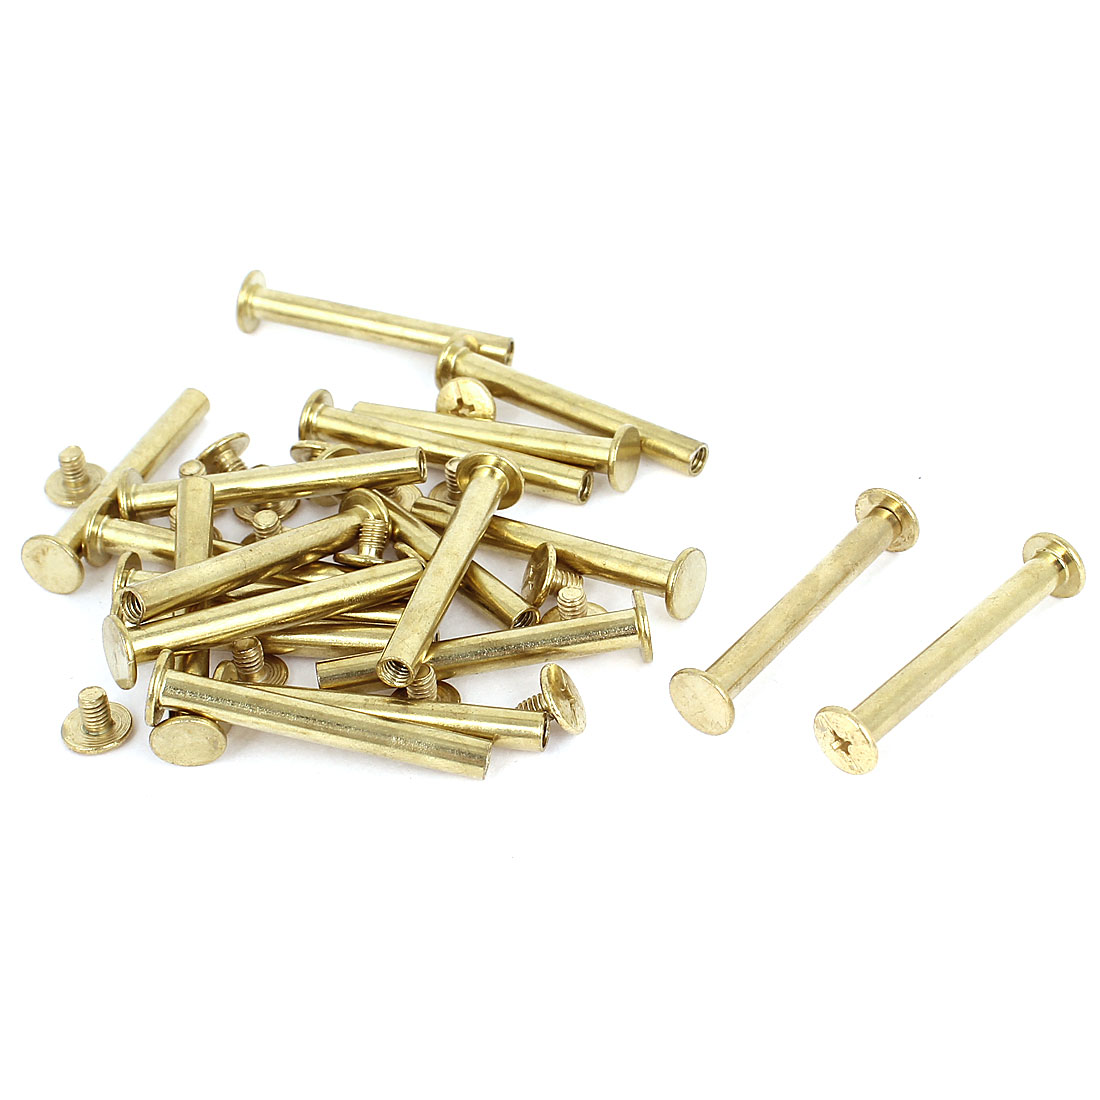 Brass Plated 5x40mm Binding Chicago Screw Post 20pcs for Leather Scrapbook